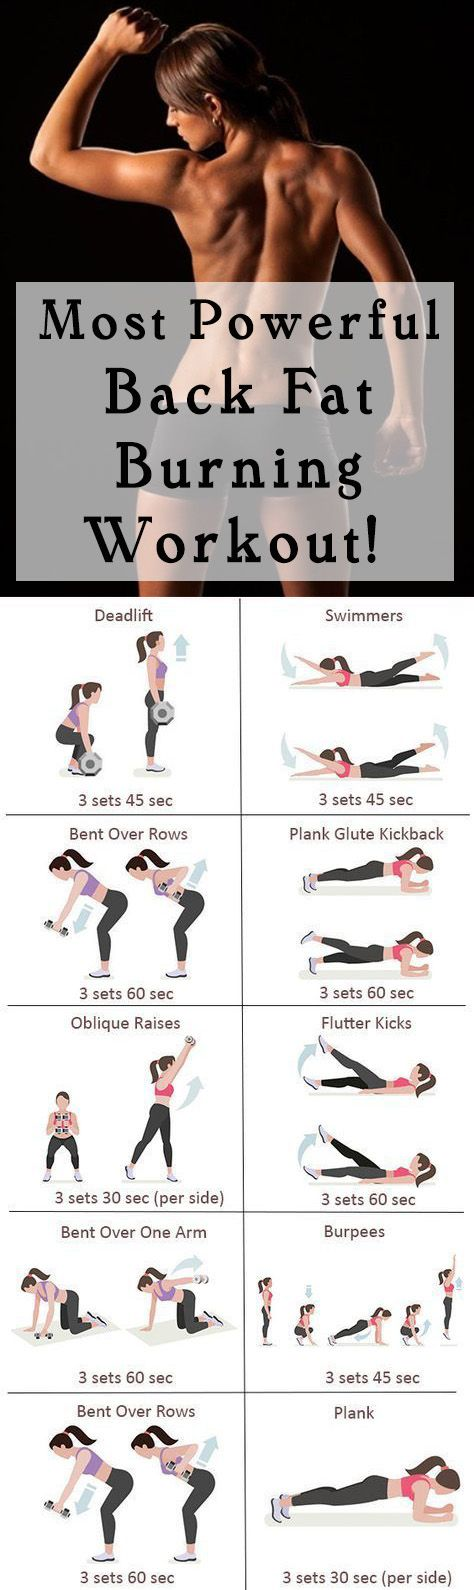 Most Powerful Back Fat Burning Workout! #fat #health #fitness    Posted By: NewHowToLoseBellyFat.com